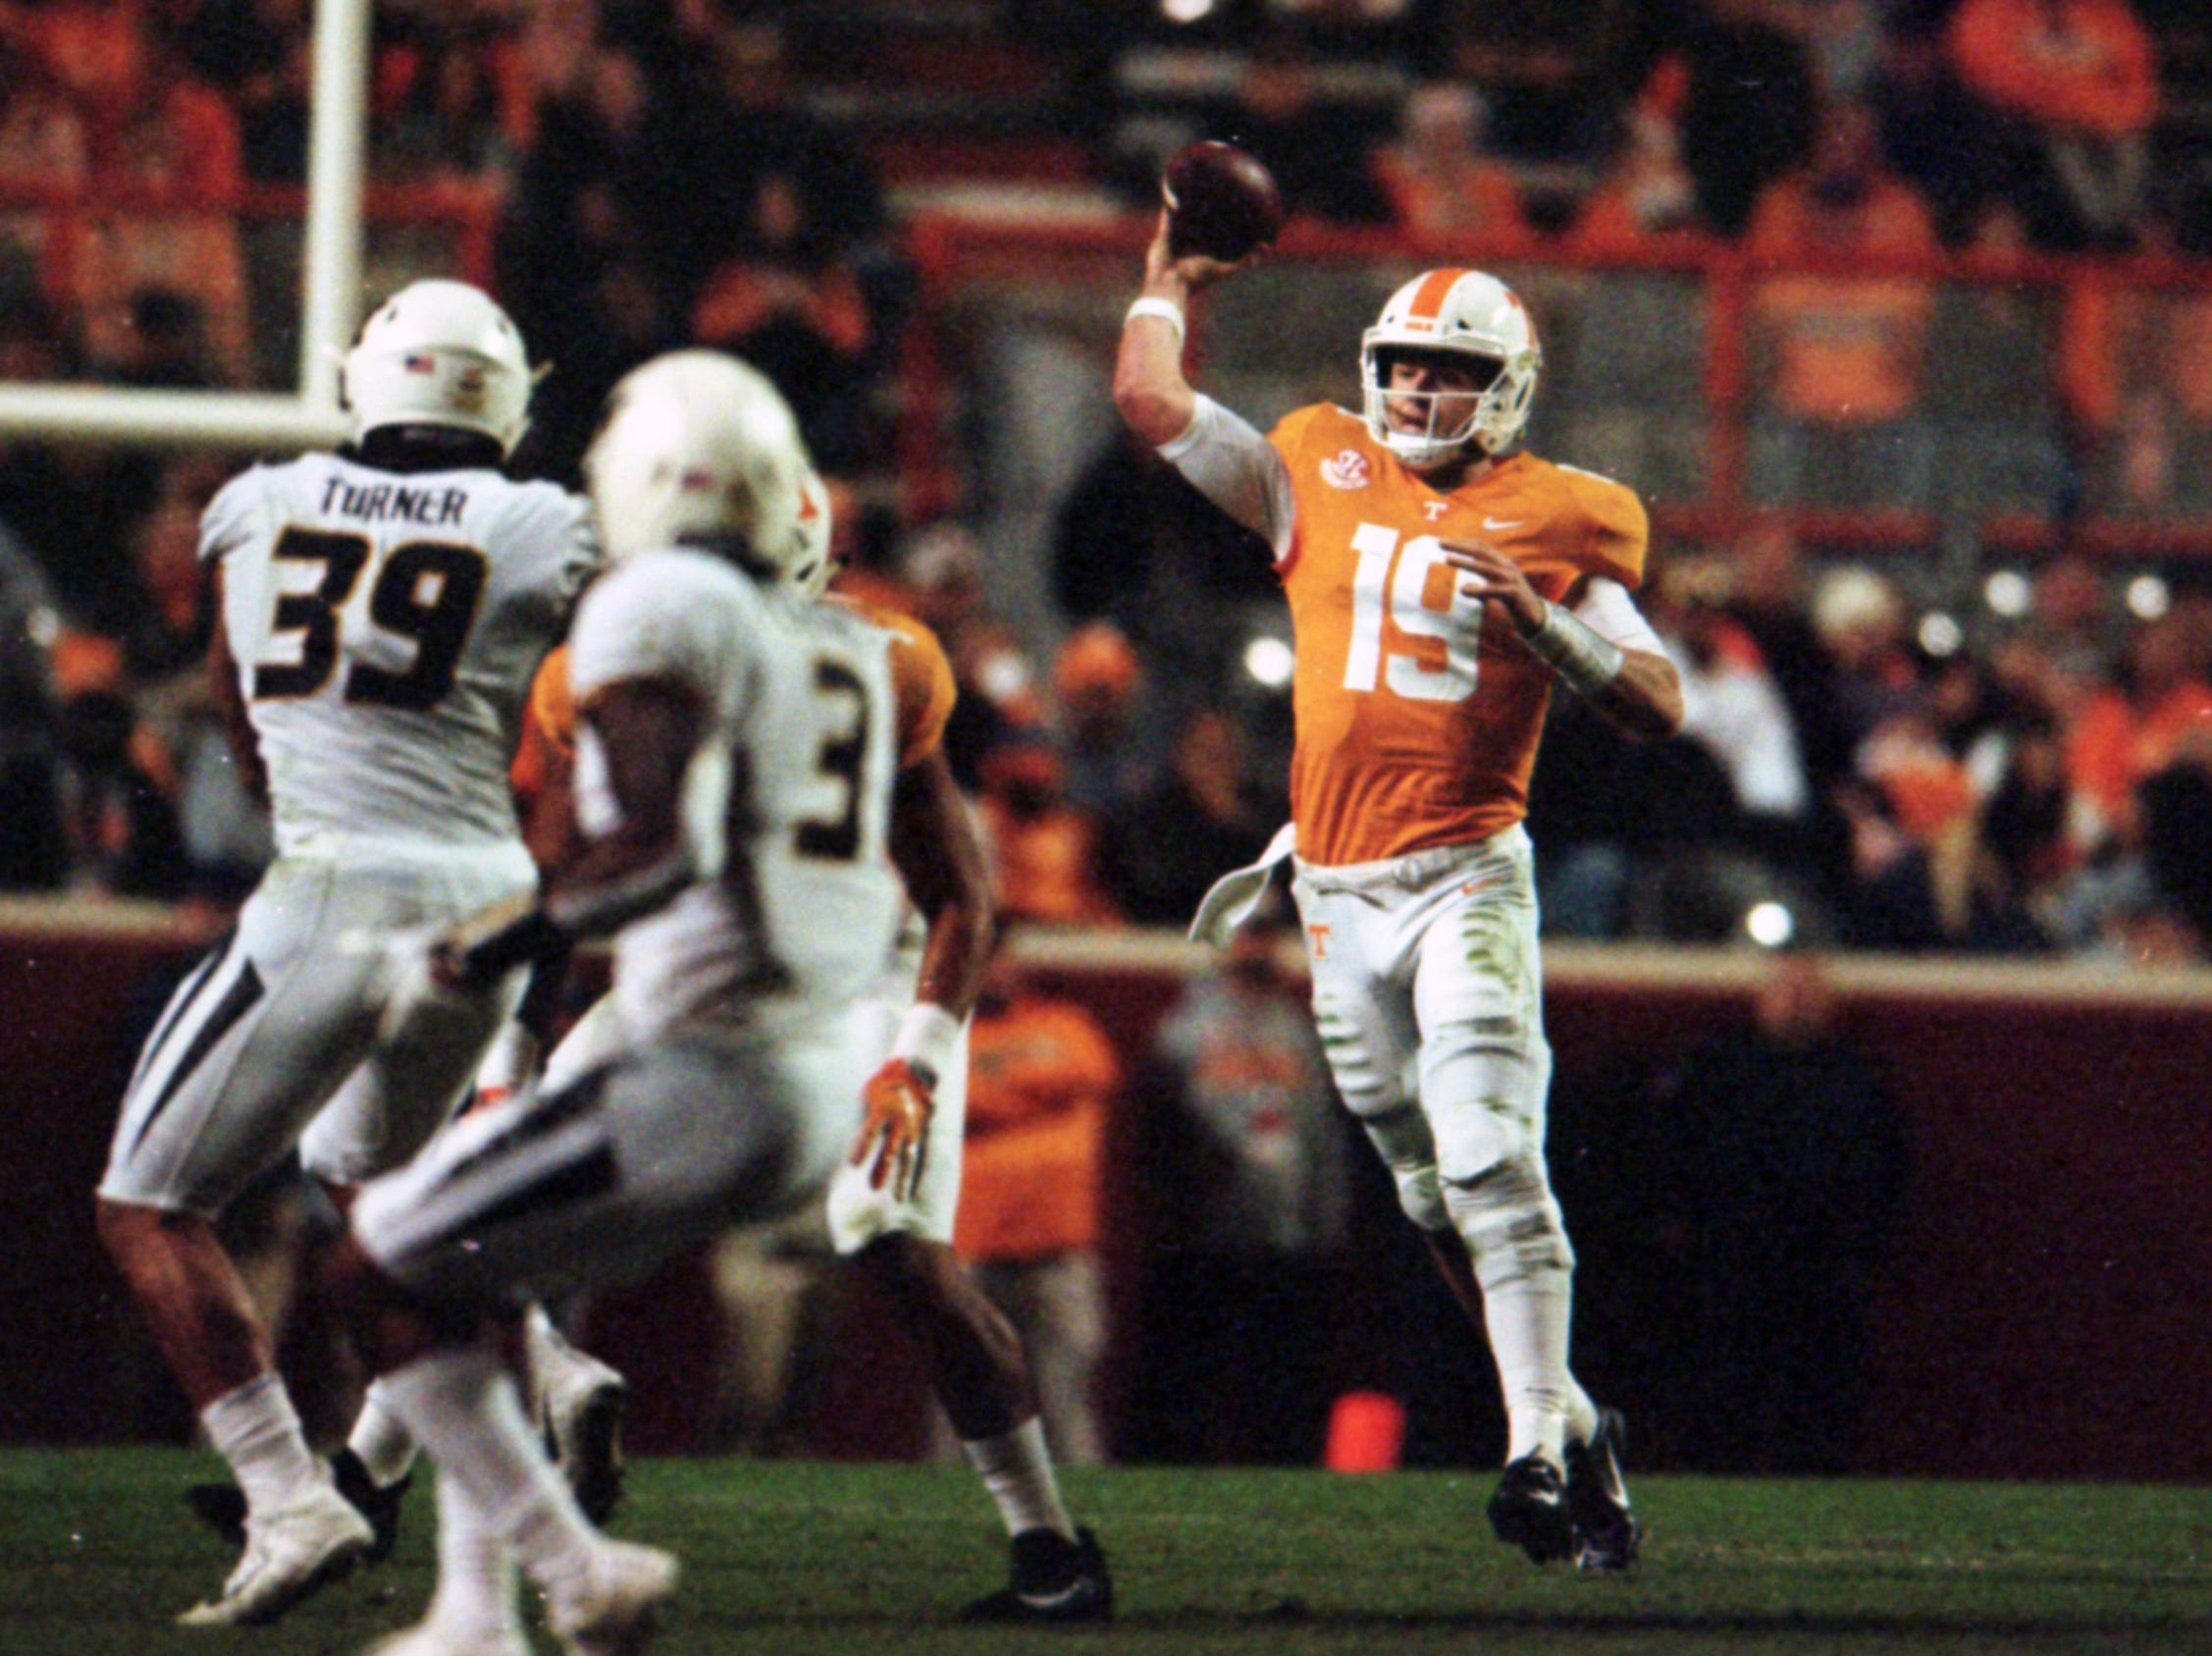 Tennessee quarterback Keller Chryst (19) throws a pass during a game between Tennessee and Missouri at Neyland Stadium in Knoxville, Tennessee on Saturday, November 17, 2018.